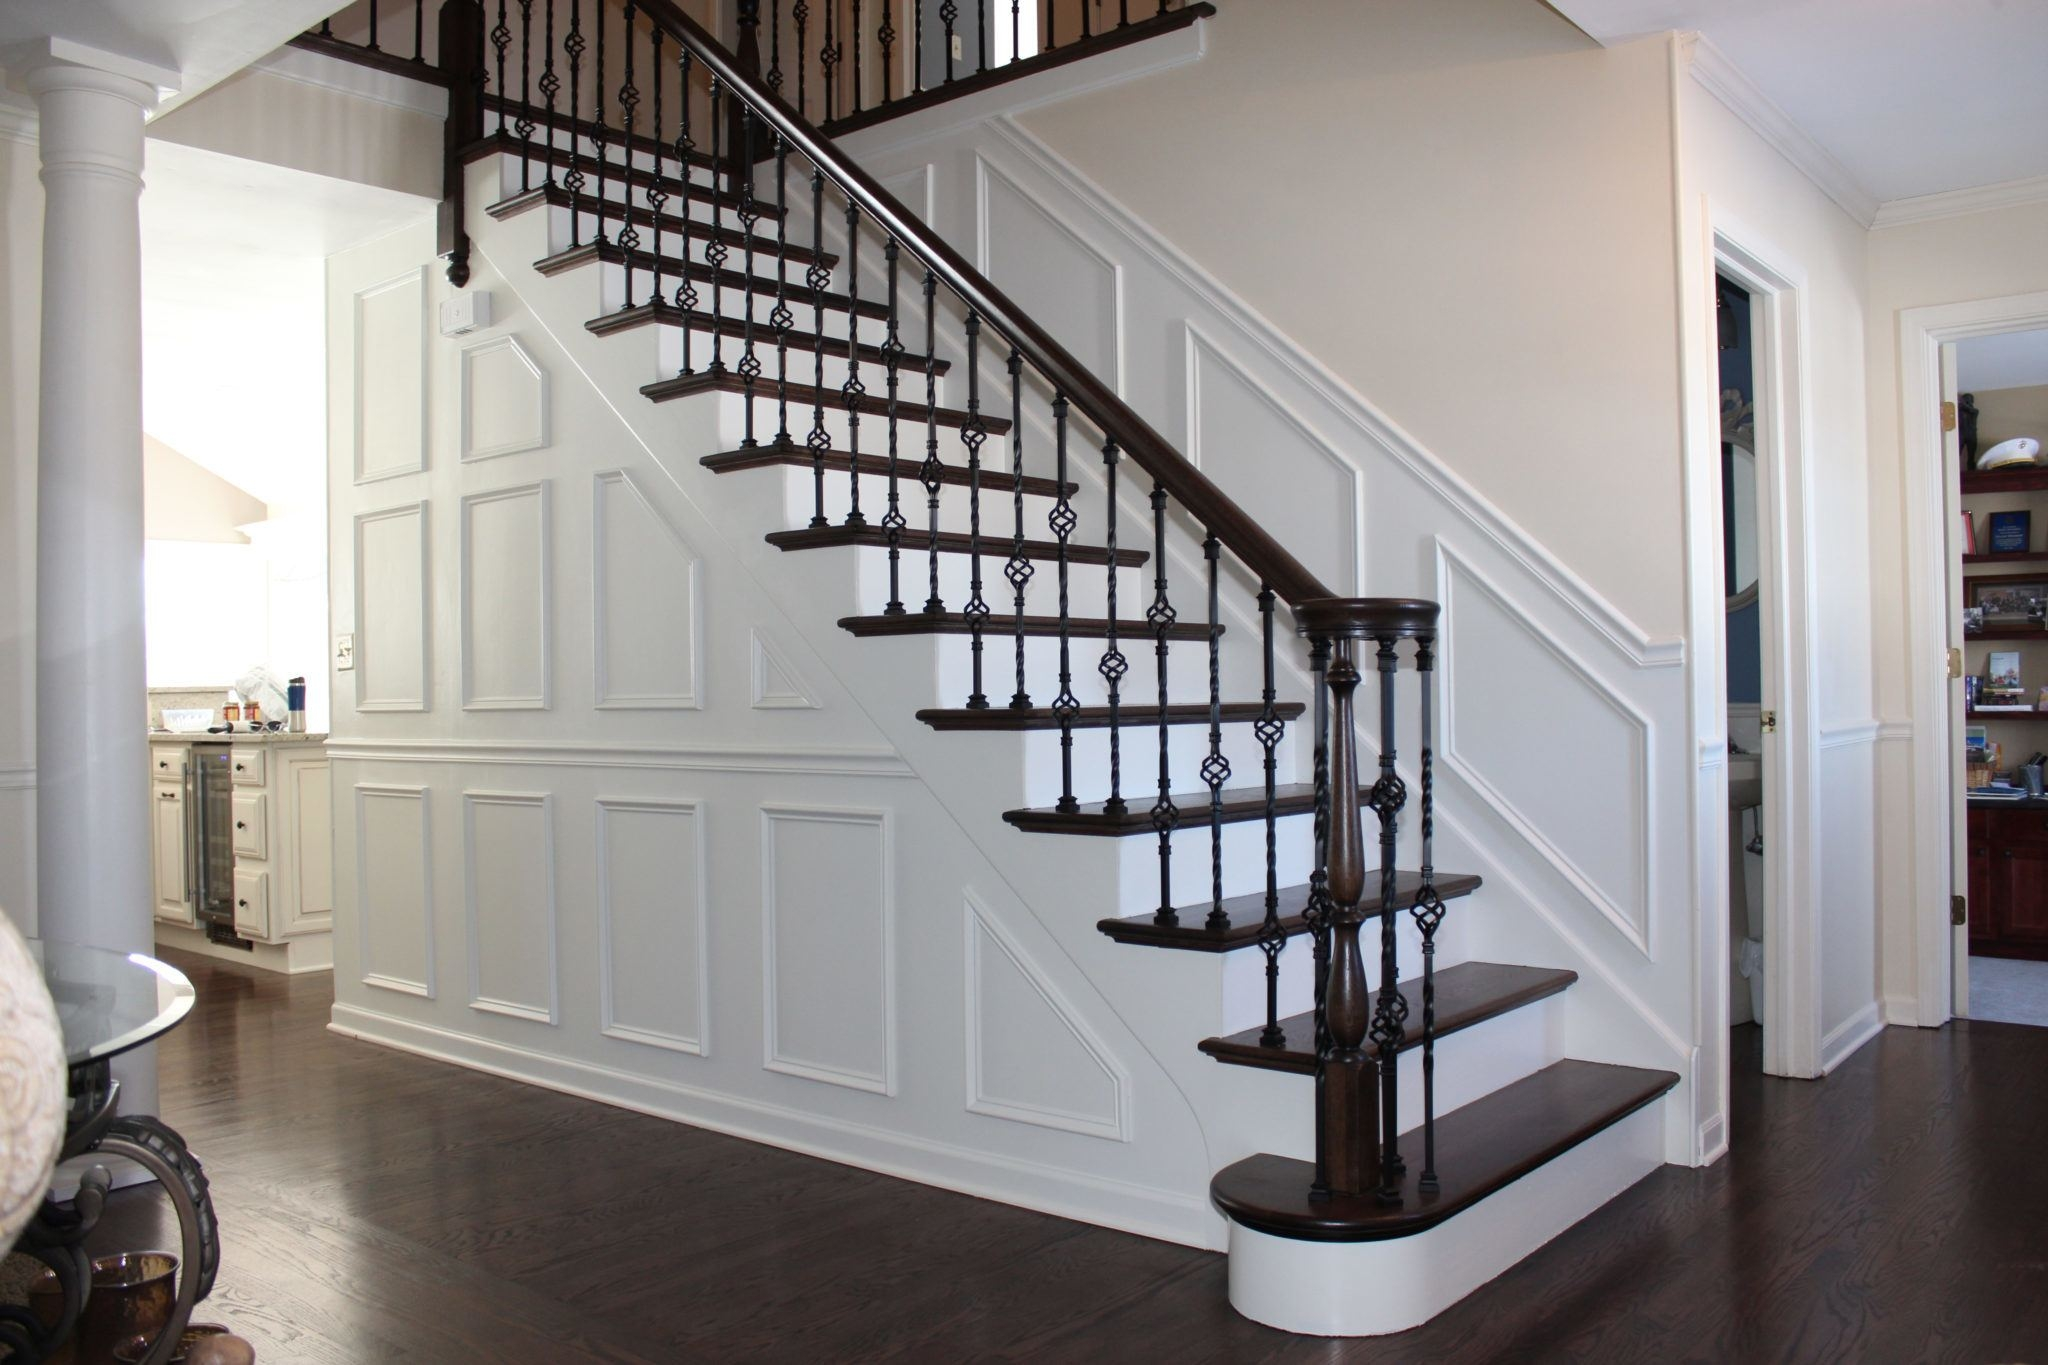 5 Stunning Stairway Trends For Your Home The Money Pit   New Banister For Stairs   Stainless Steel   Traditional   Oak   Contemporary   Indoor